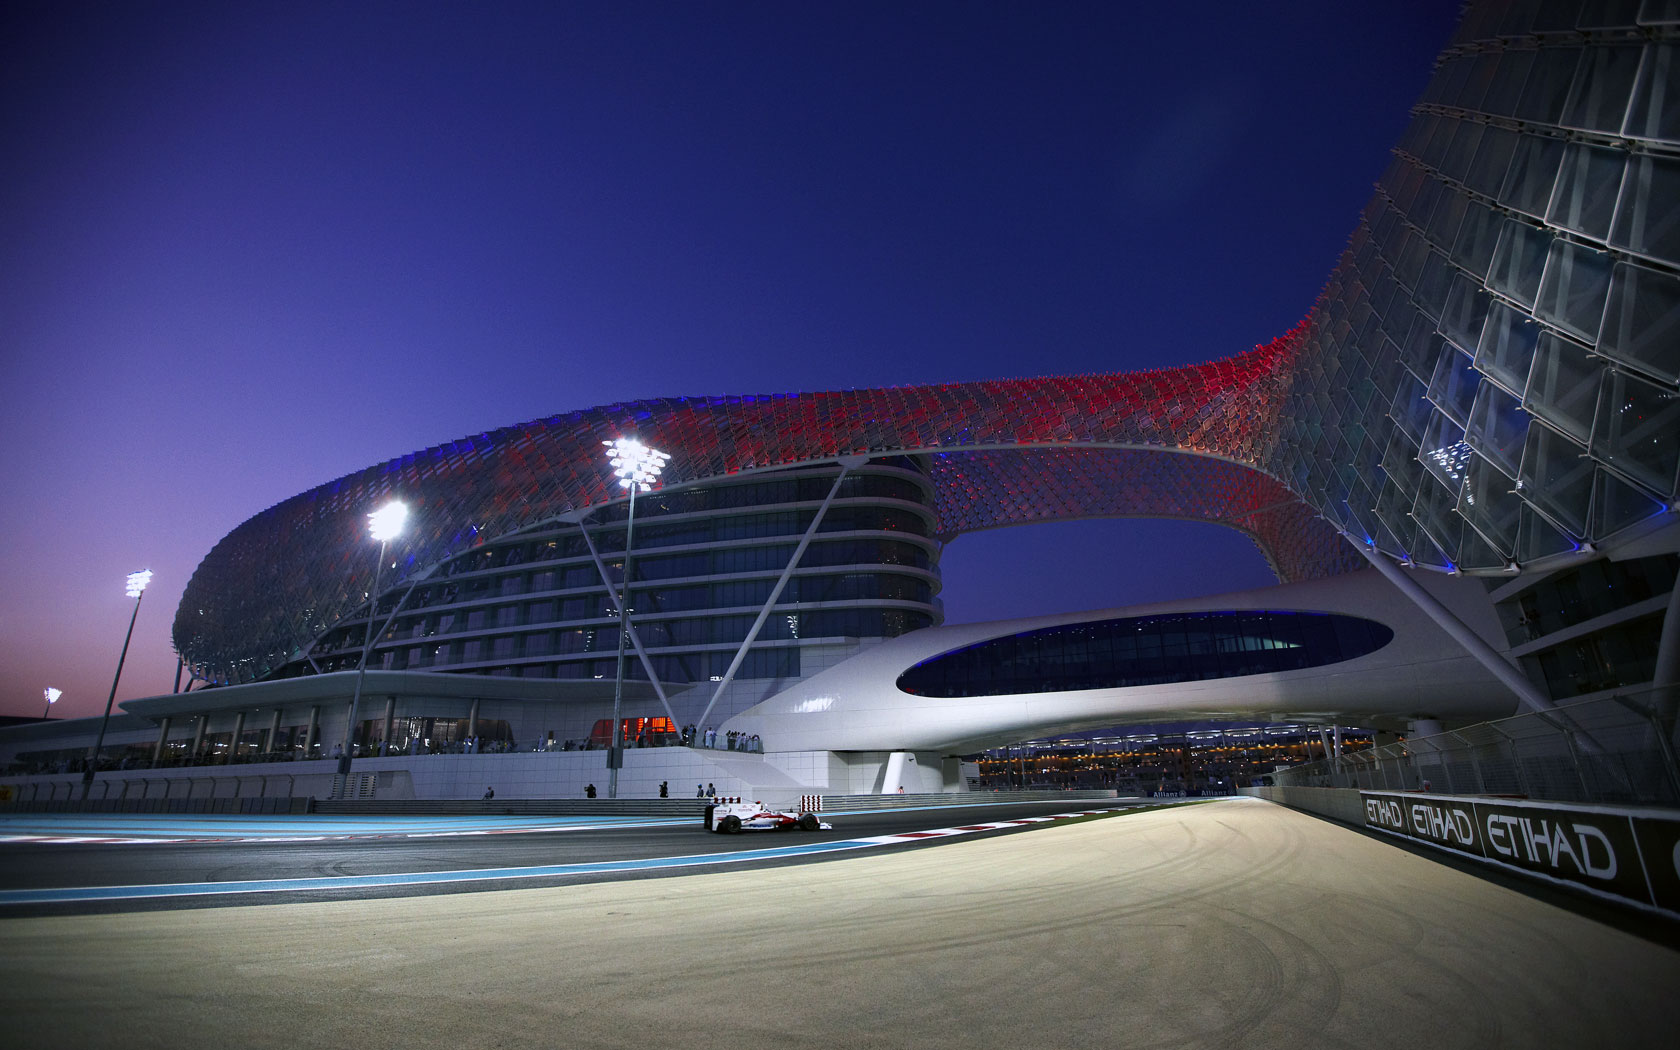 Hd wallpapers 2009 formula 1 grand prix of abu dhabi f1 for Home wallpaper uae